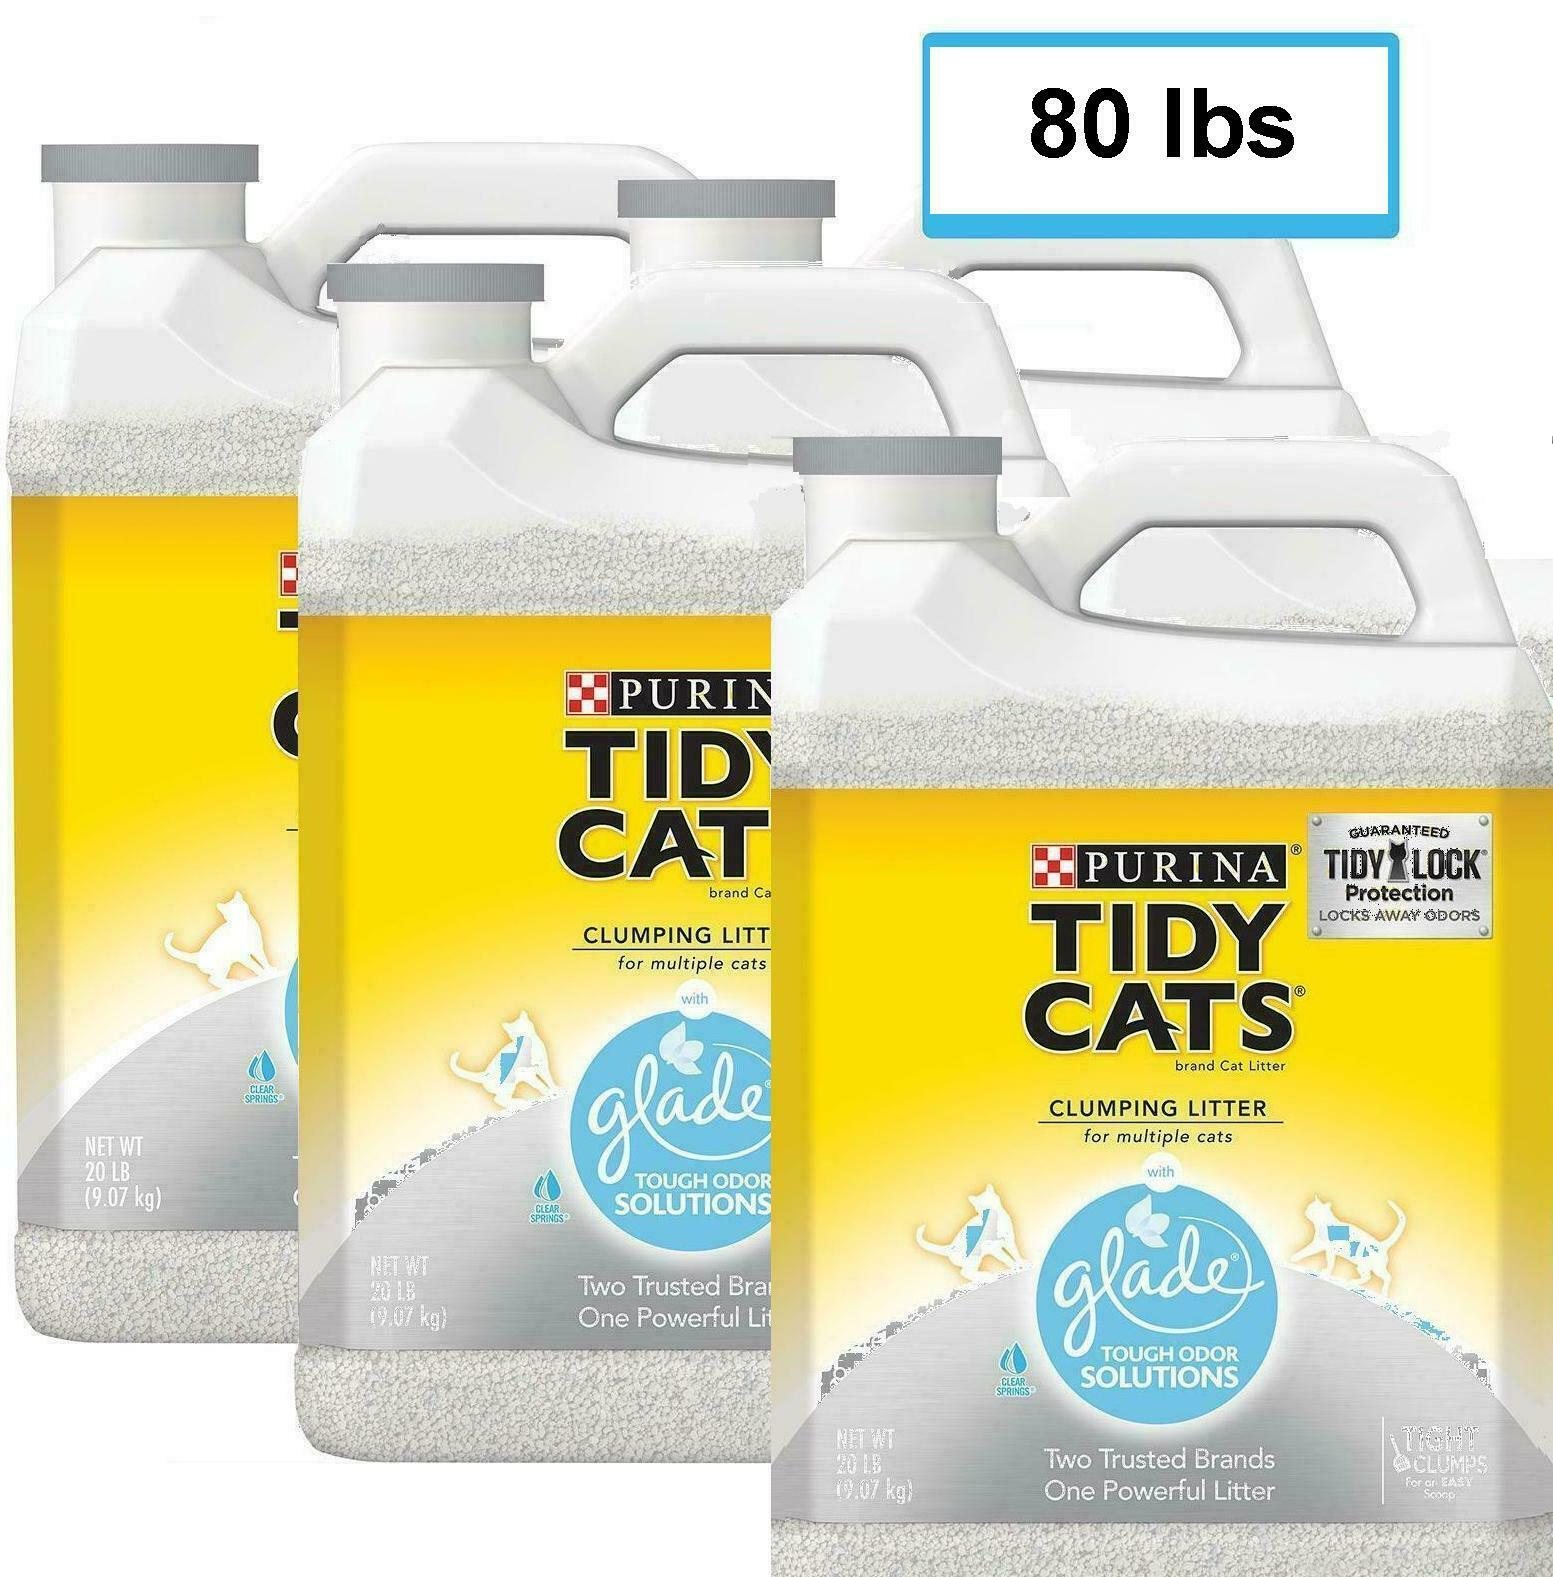 Purina Tidy Cats Glade Tough Odor Solutions Clear Springs Cl